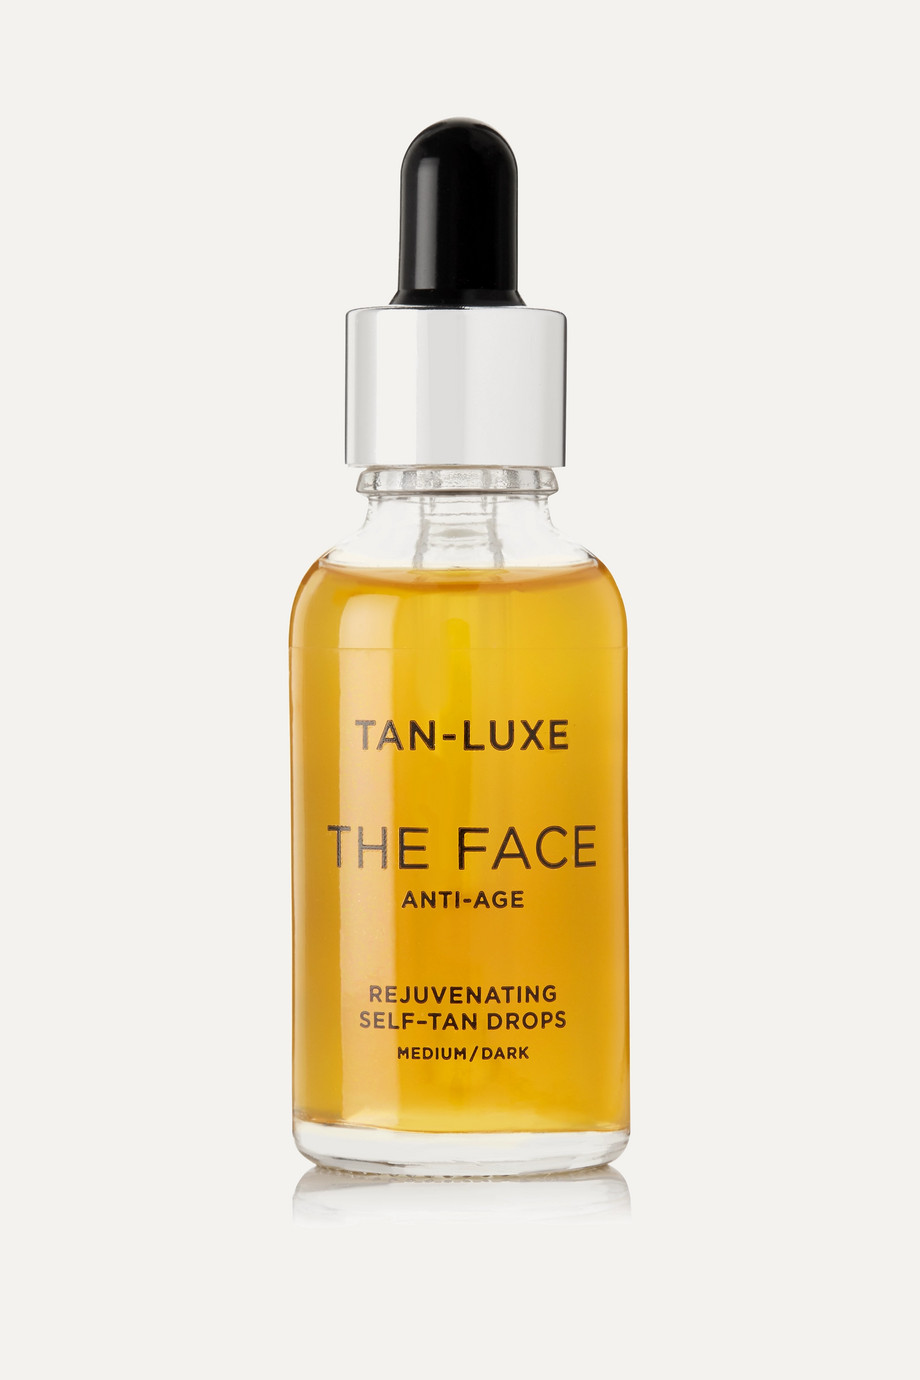 TAN-LUXE The Face Anti-Age Rejuvenating Self-Tan Drops - Medium/Dark, 30ml